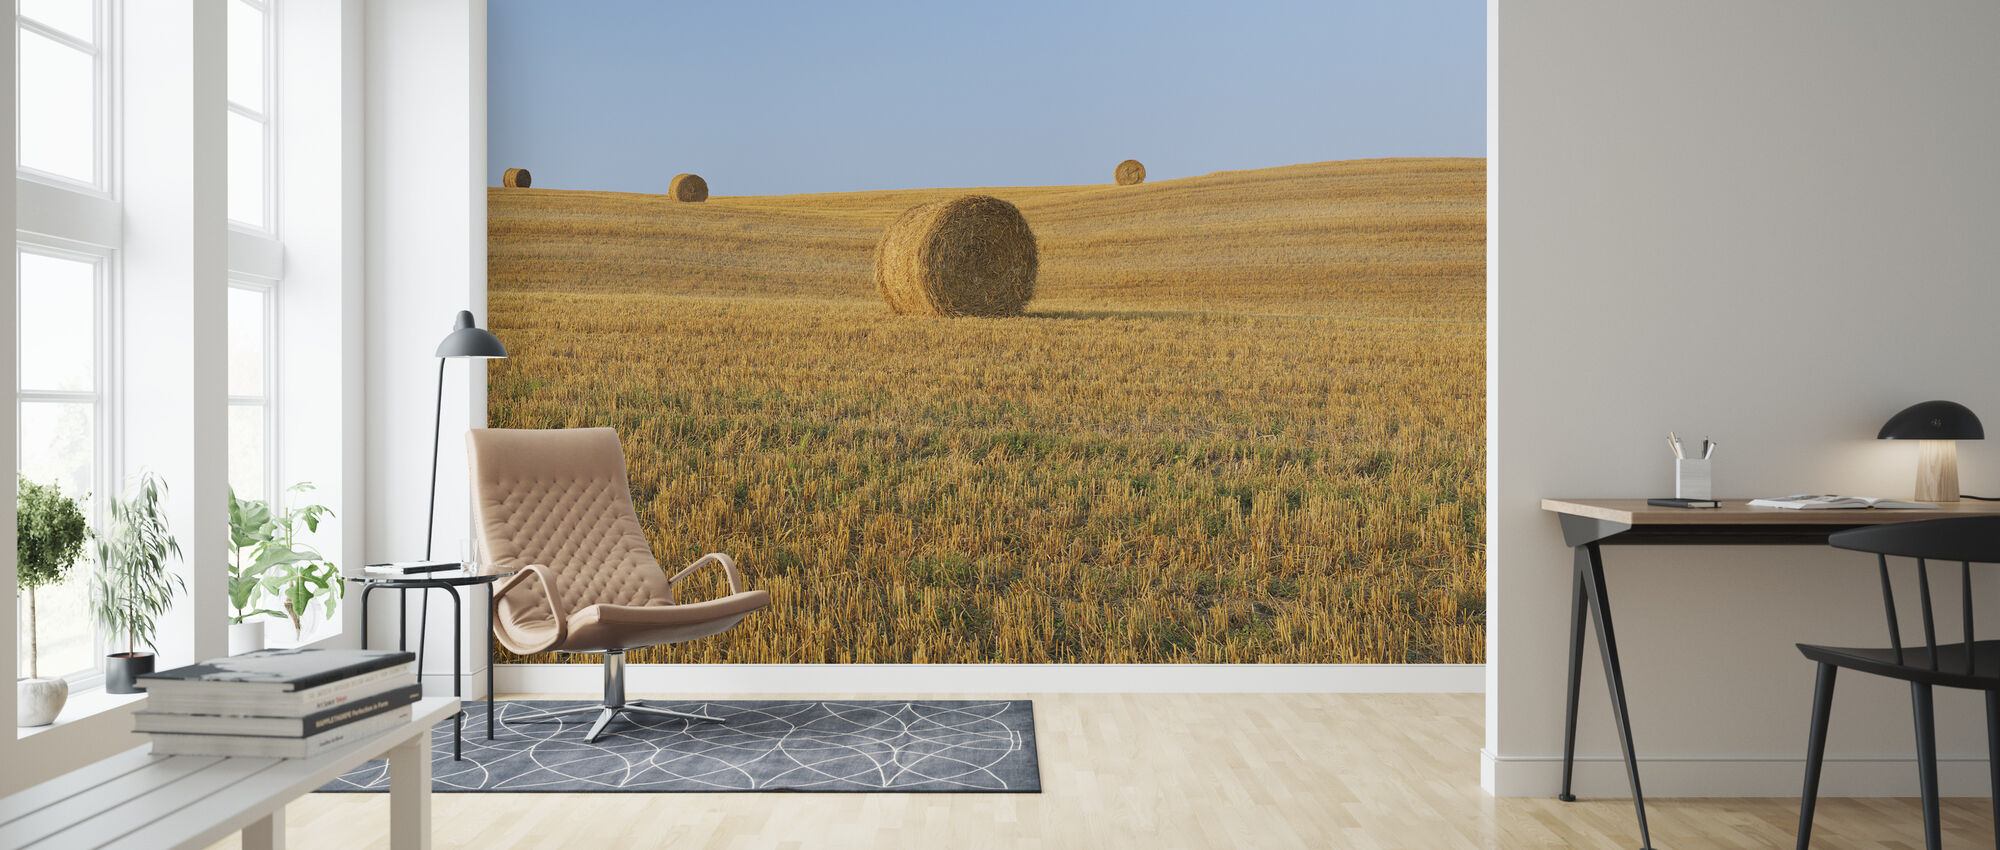 Harvested Wheat Field - Wallpaper - Living Room